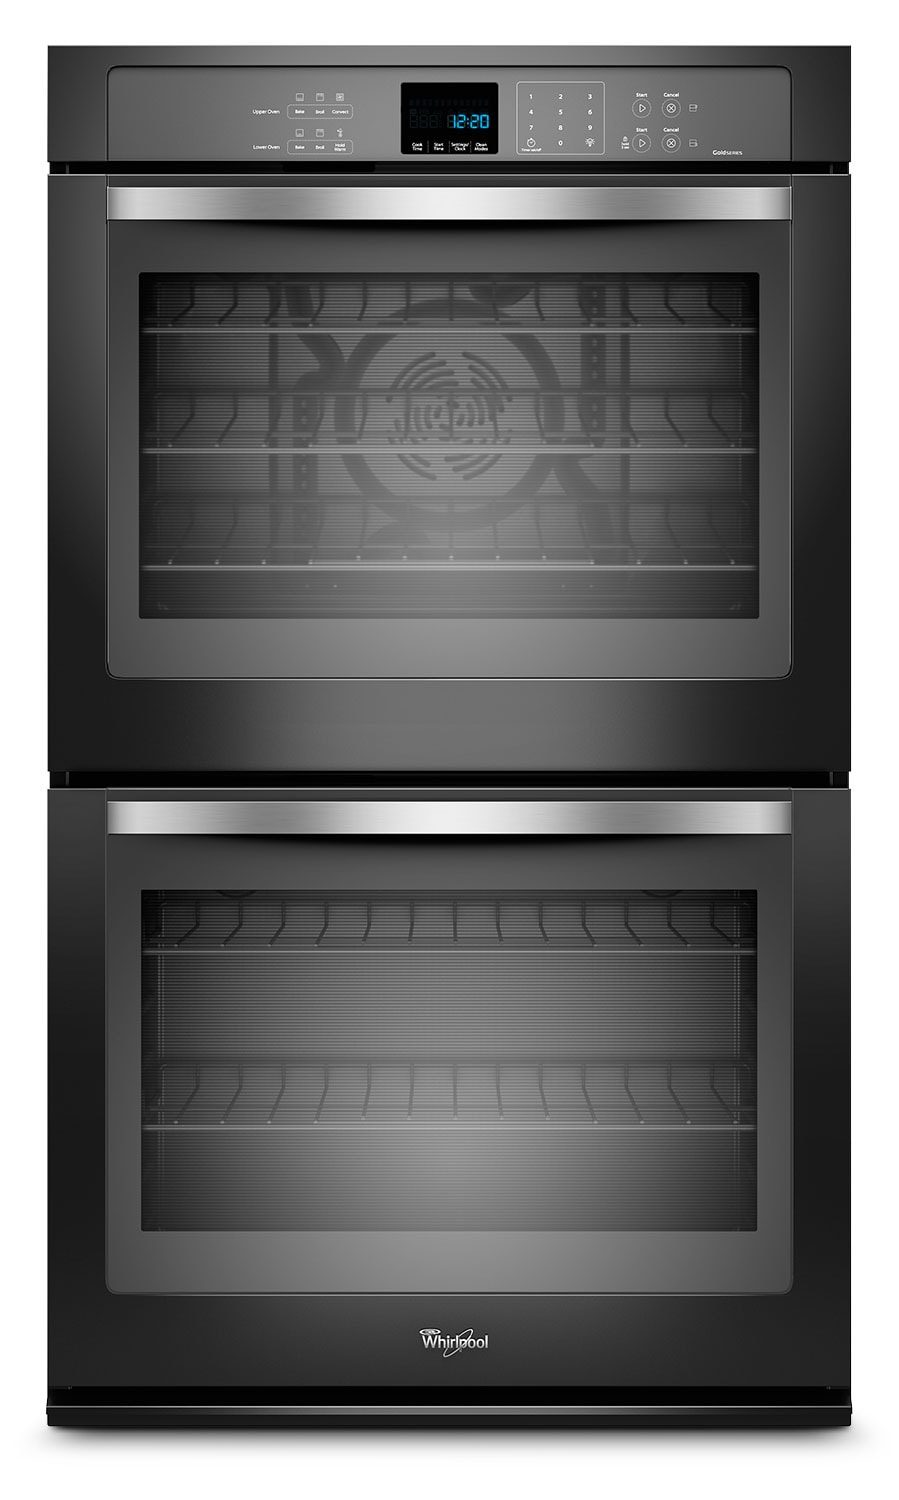 Cooking Products - Whirlpool Gold® 10 Cu. Ft. Double Wall Oven – Black Pearl WOD93EC0AE